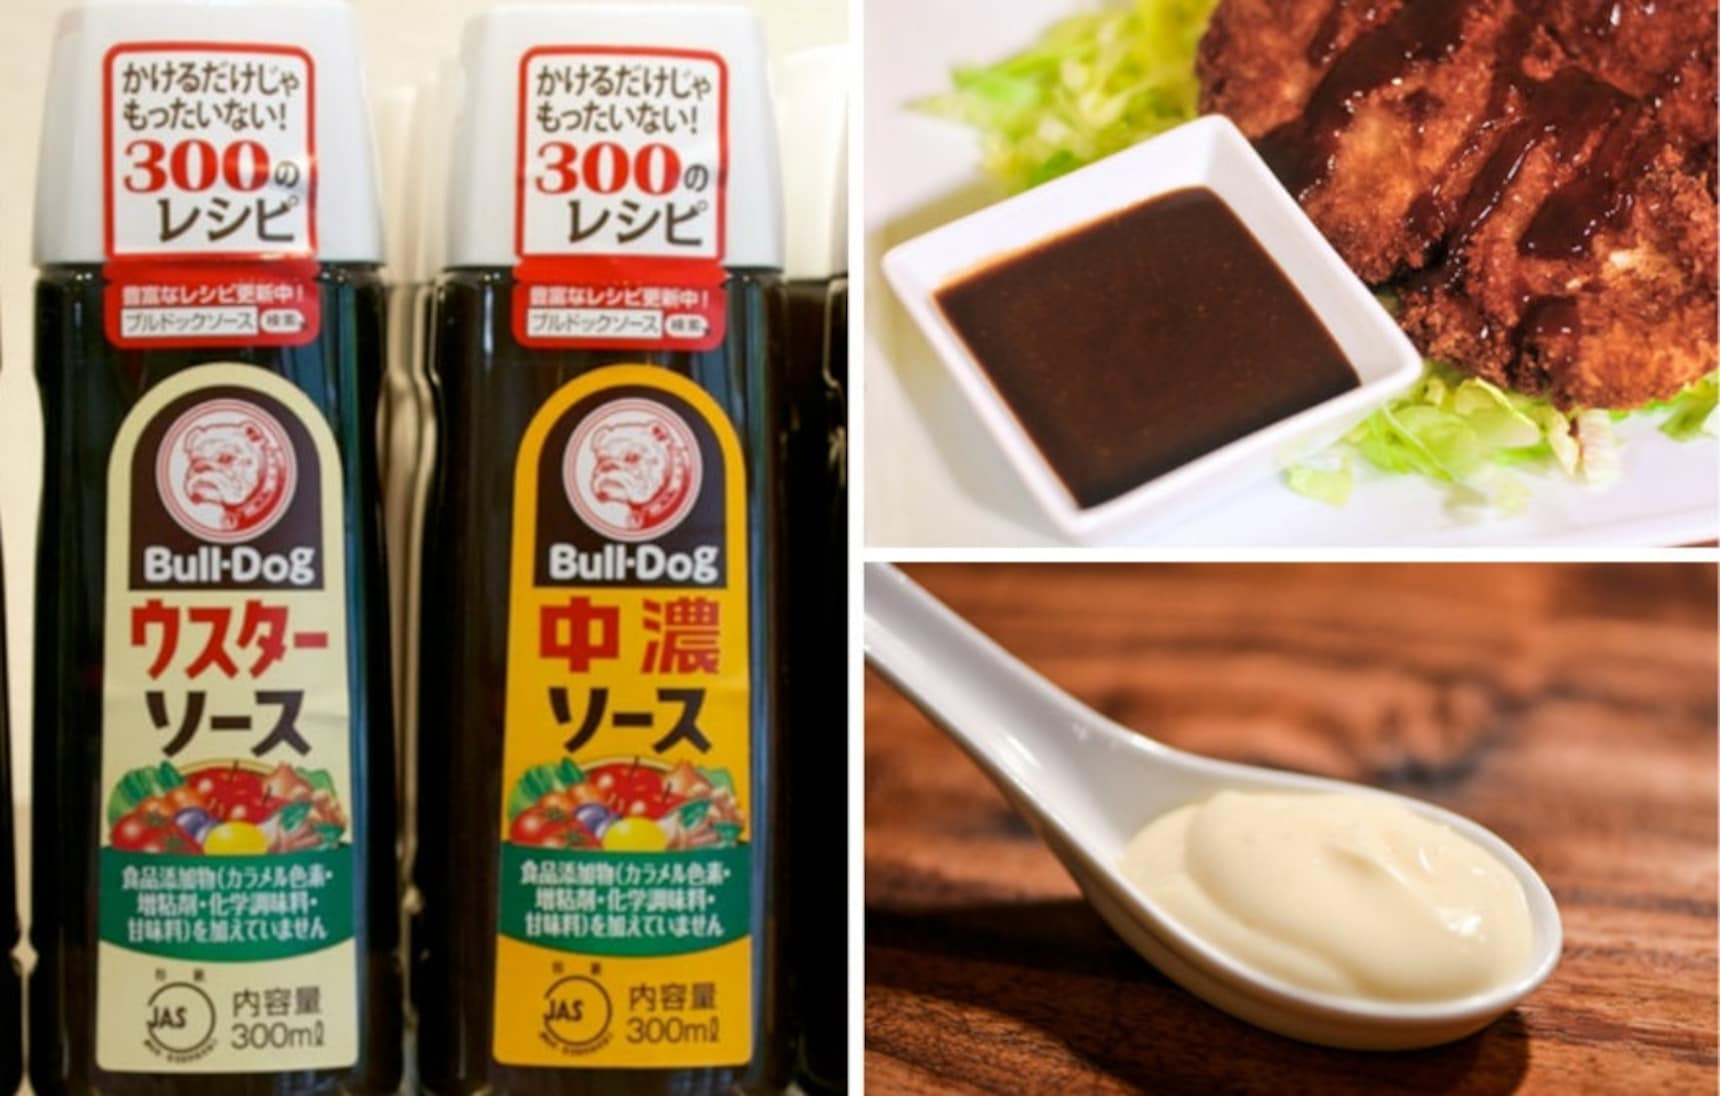 3 Japanese Sauces to Spice Up Your Burger